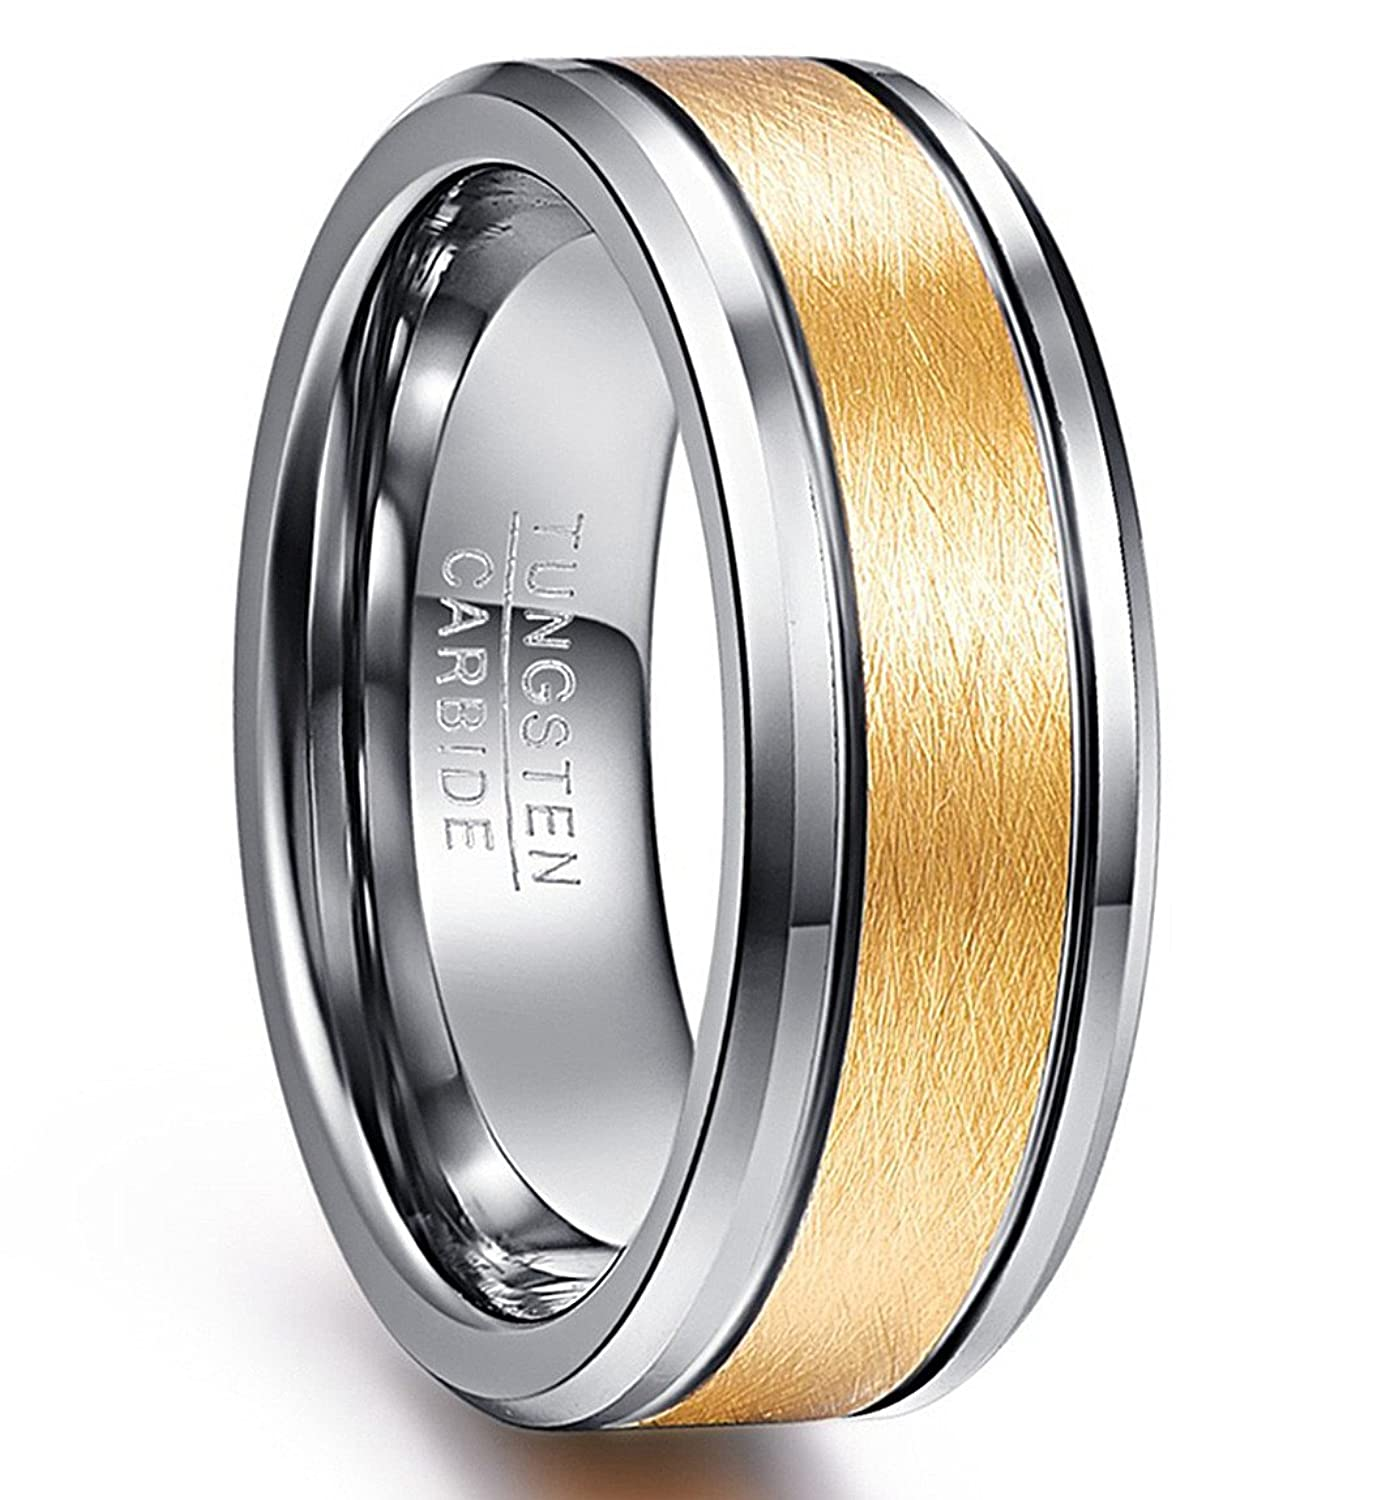 Vakki 8mm Men's Gold Plated Tungsten Carbide Rings Brushed Center Two Grooves Wedding Bands Beveled Edge Size 7-12